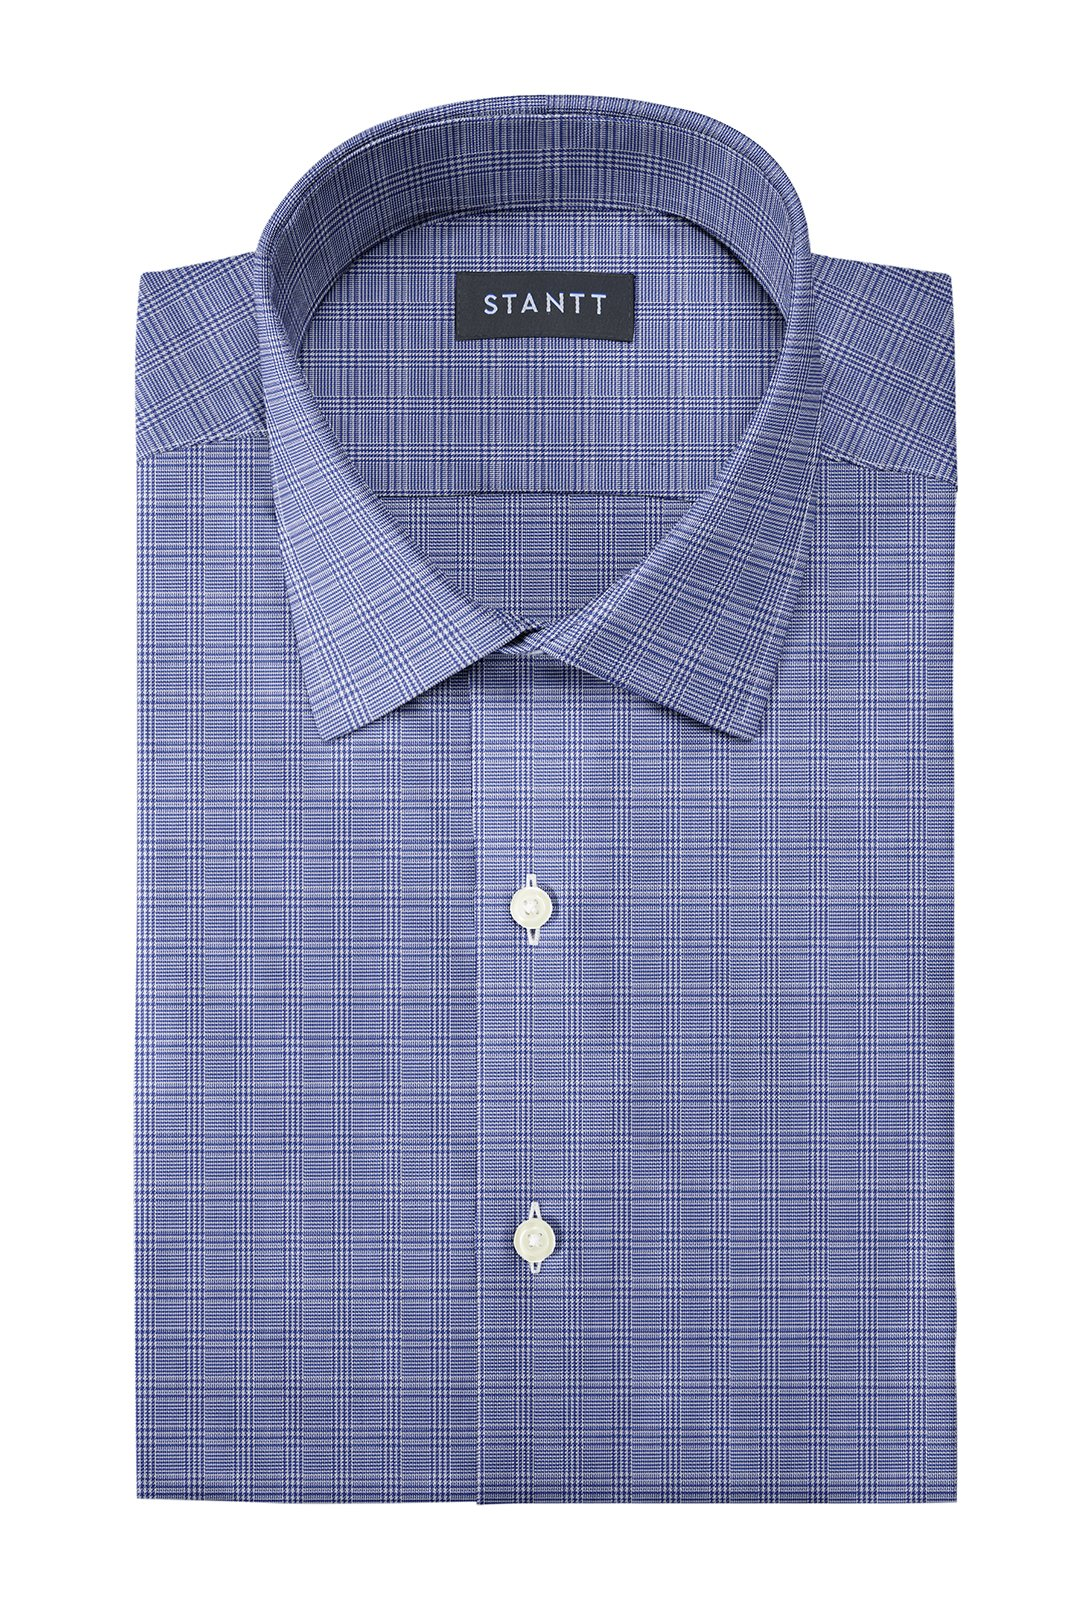 Wrinkle-Resistant Navy Prince of Wales Check: Modified-Spread Collar, French Cuff